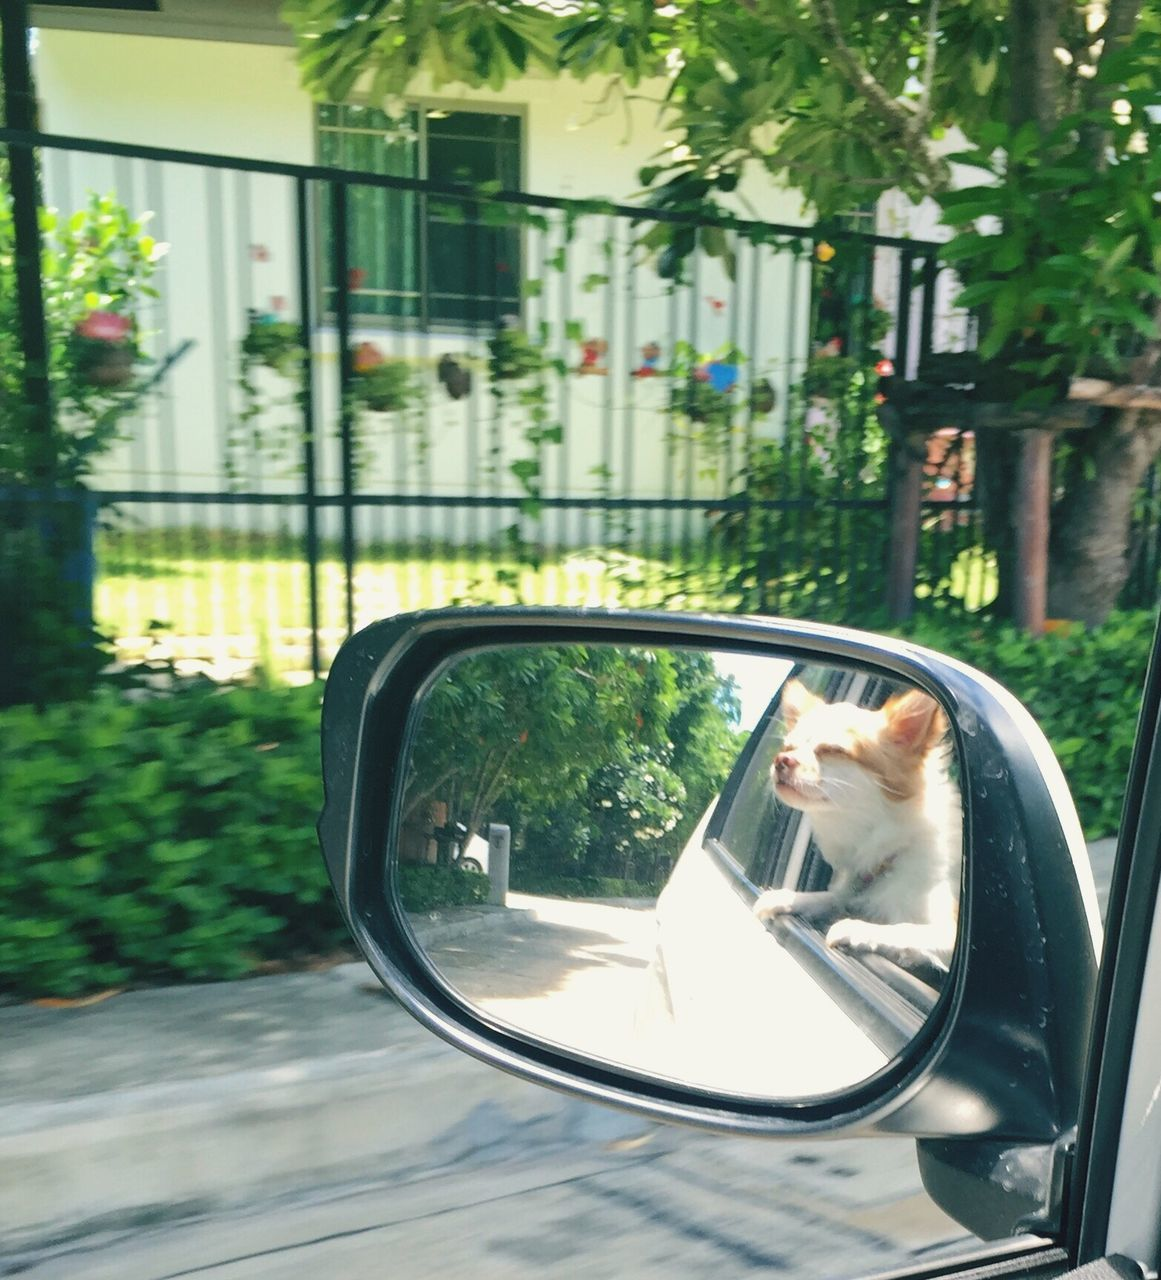 side-view mirror, car, transportation, real people, mode of transport, land vehicle, one person, road, day, mirror, outdoors, vehicle mirror, lifestyles, tree, nature, young adult, close-up, people